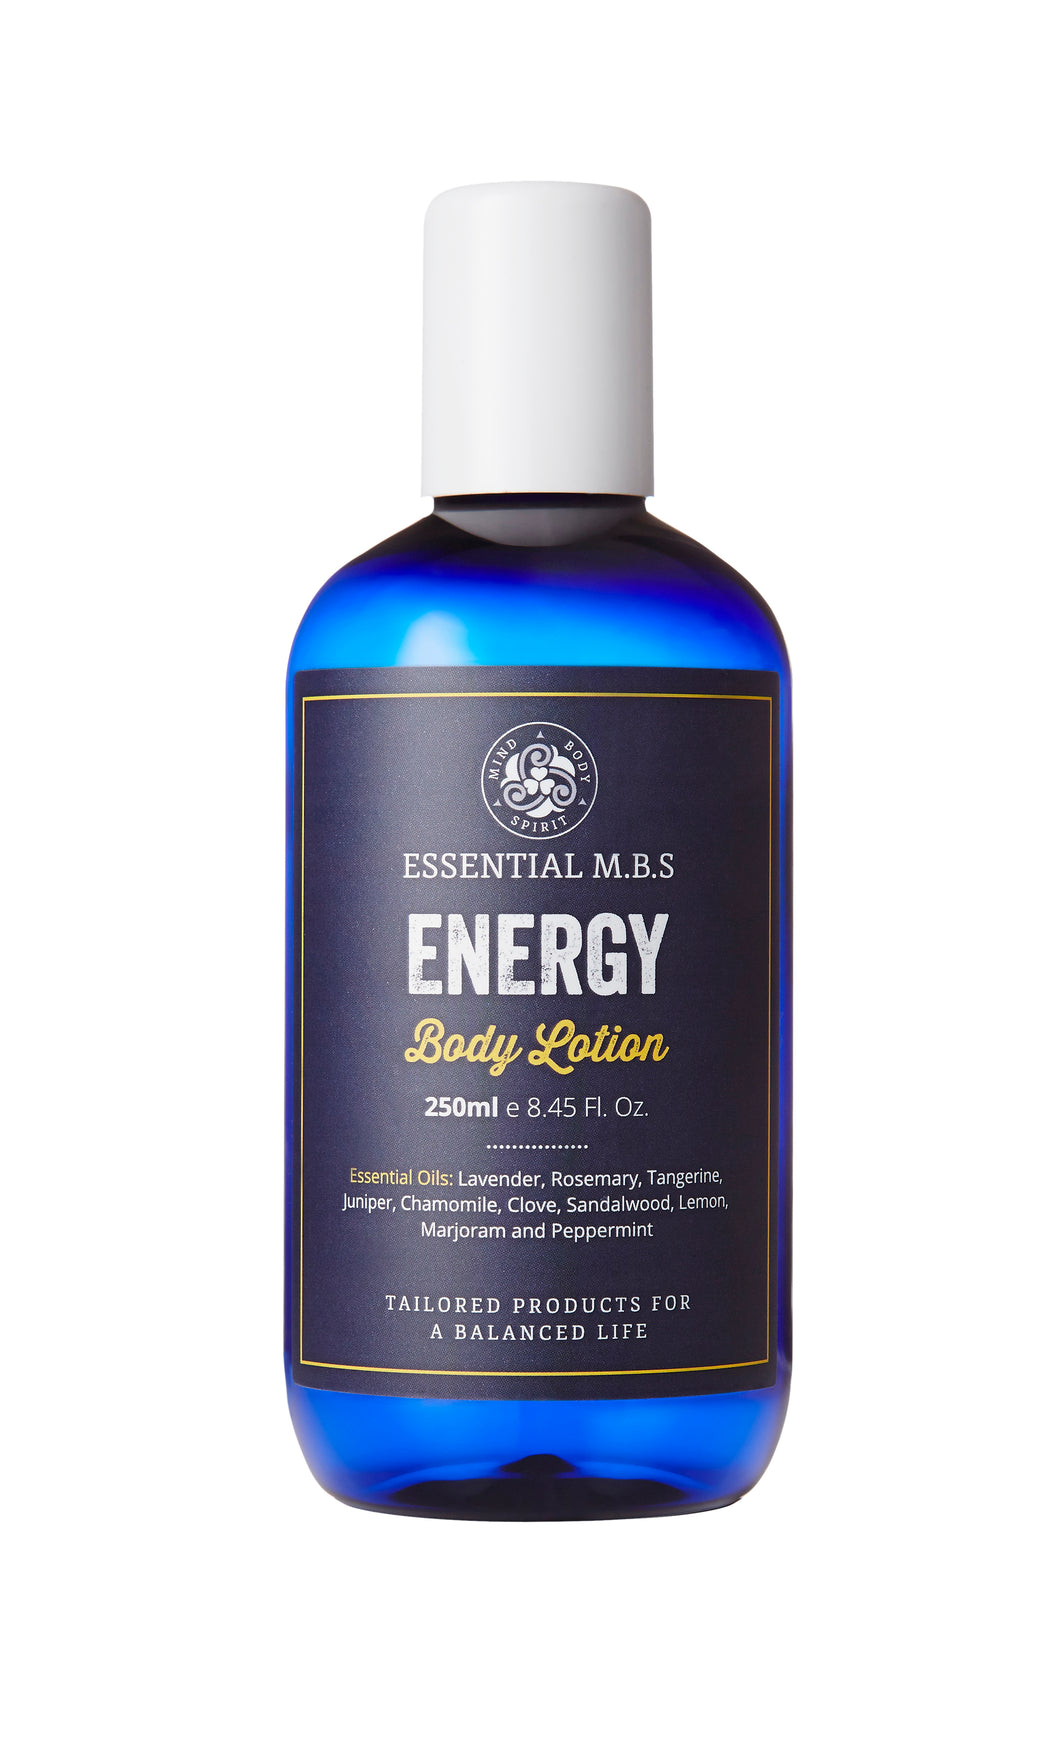 Energy Body Lotion